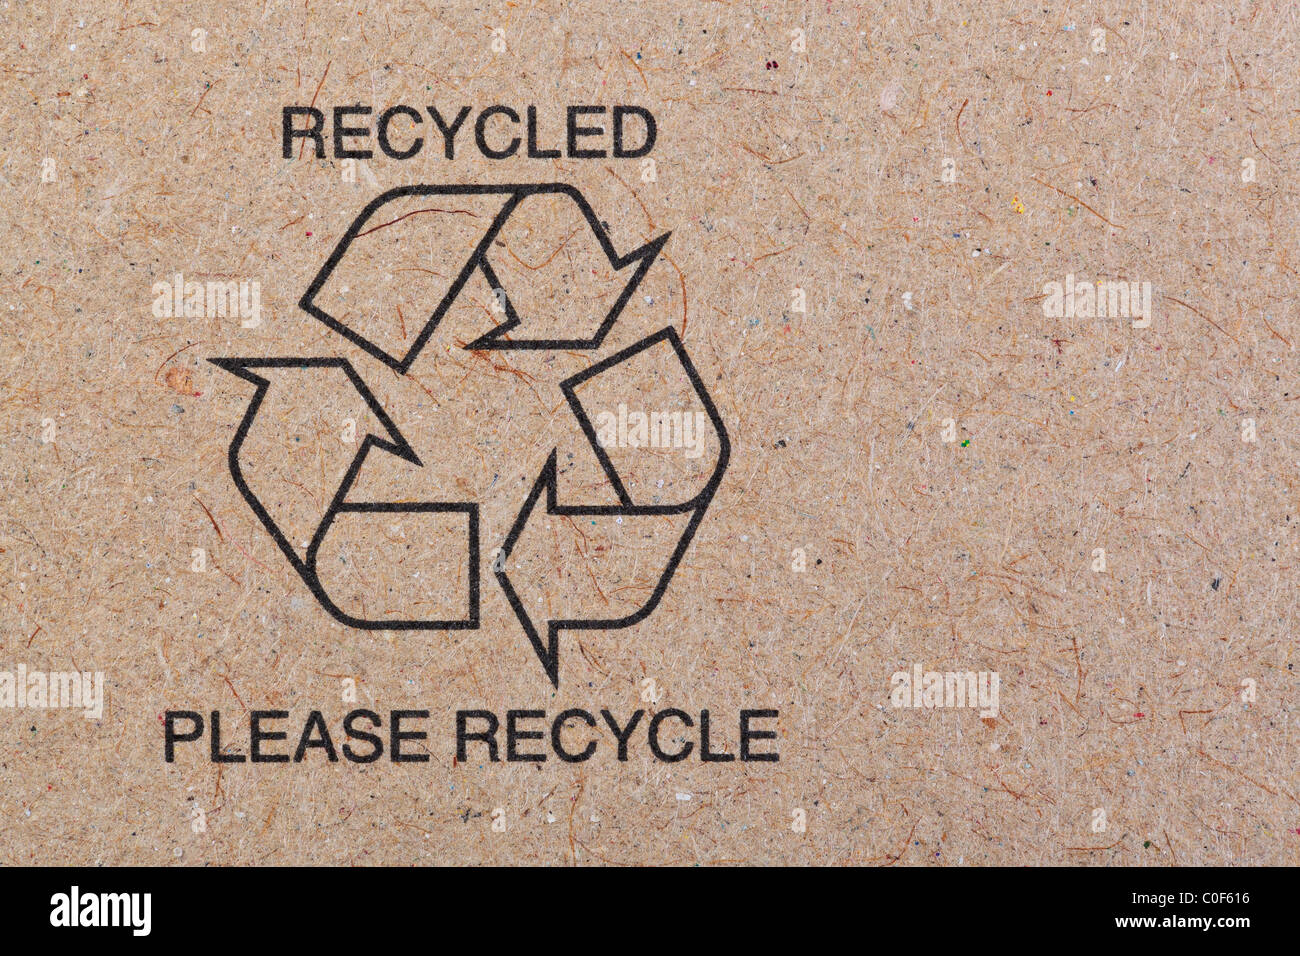 Close up photo of the recycle symbol printed on a recycled cardboard background. - Stock Image